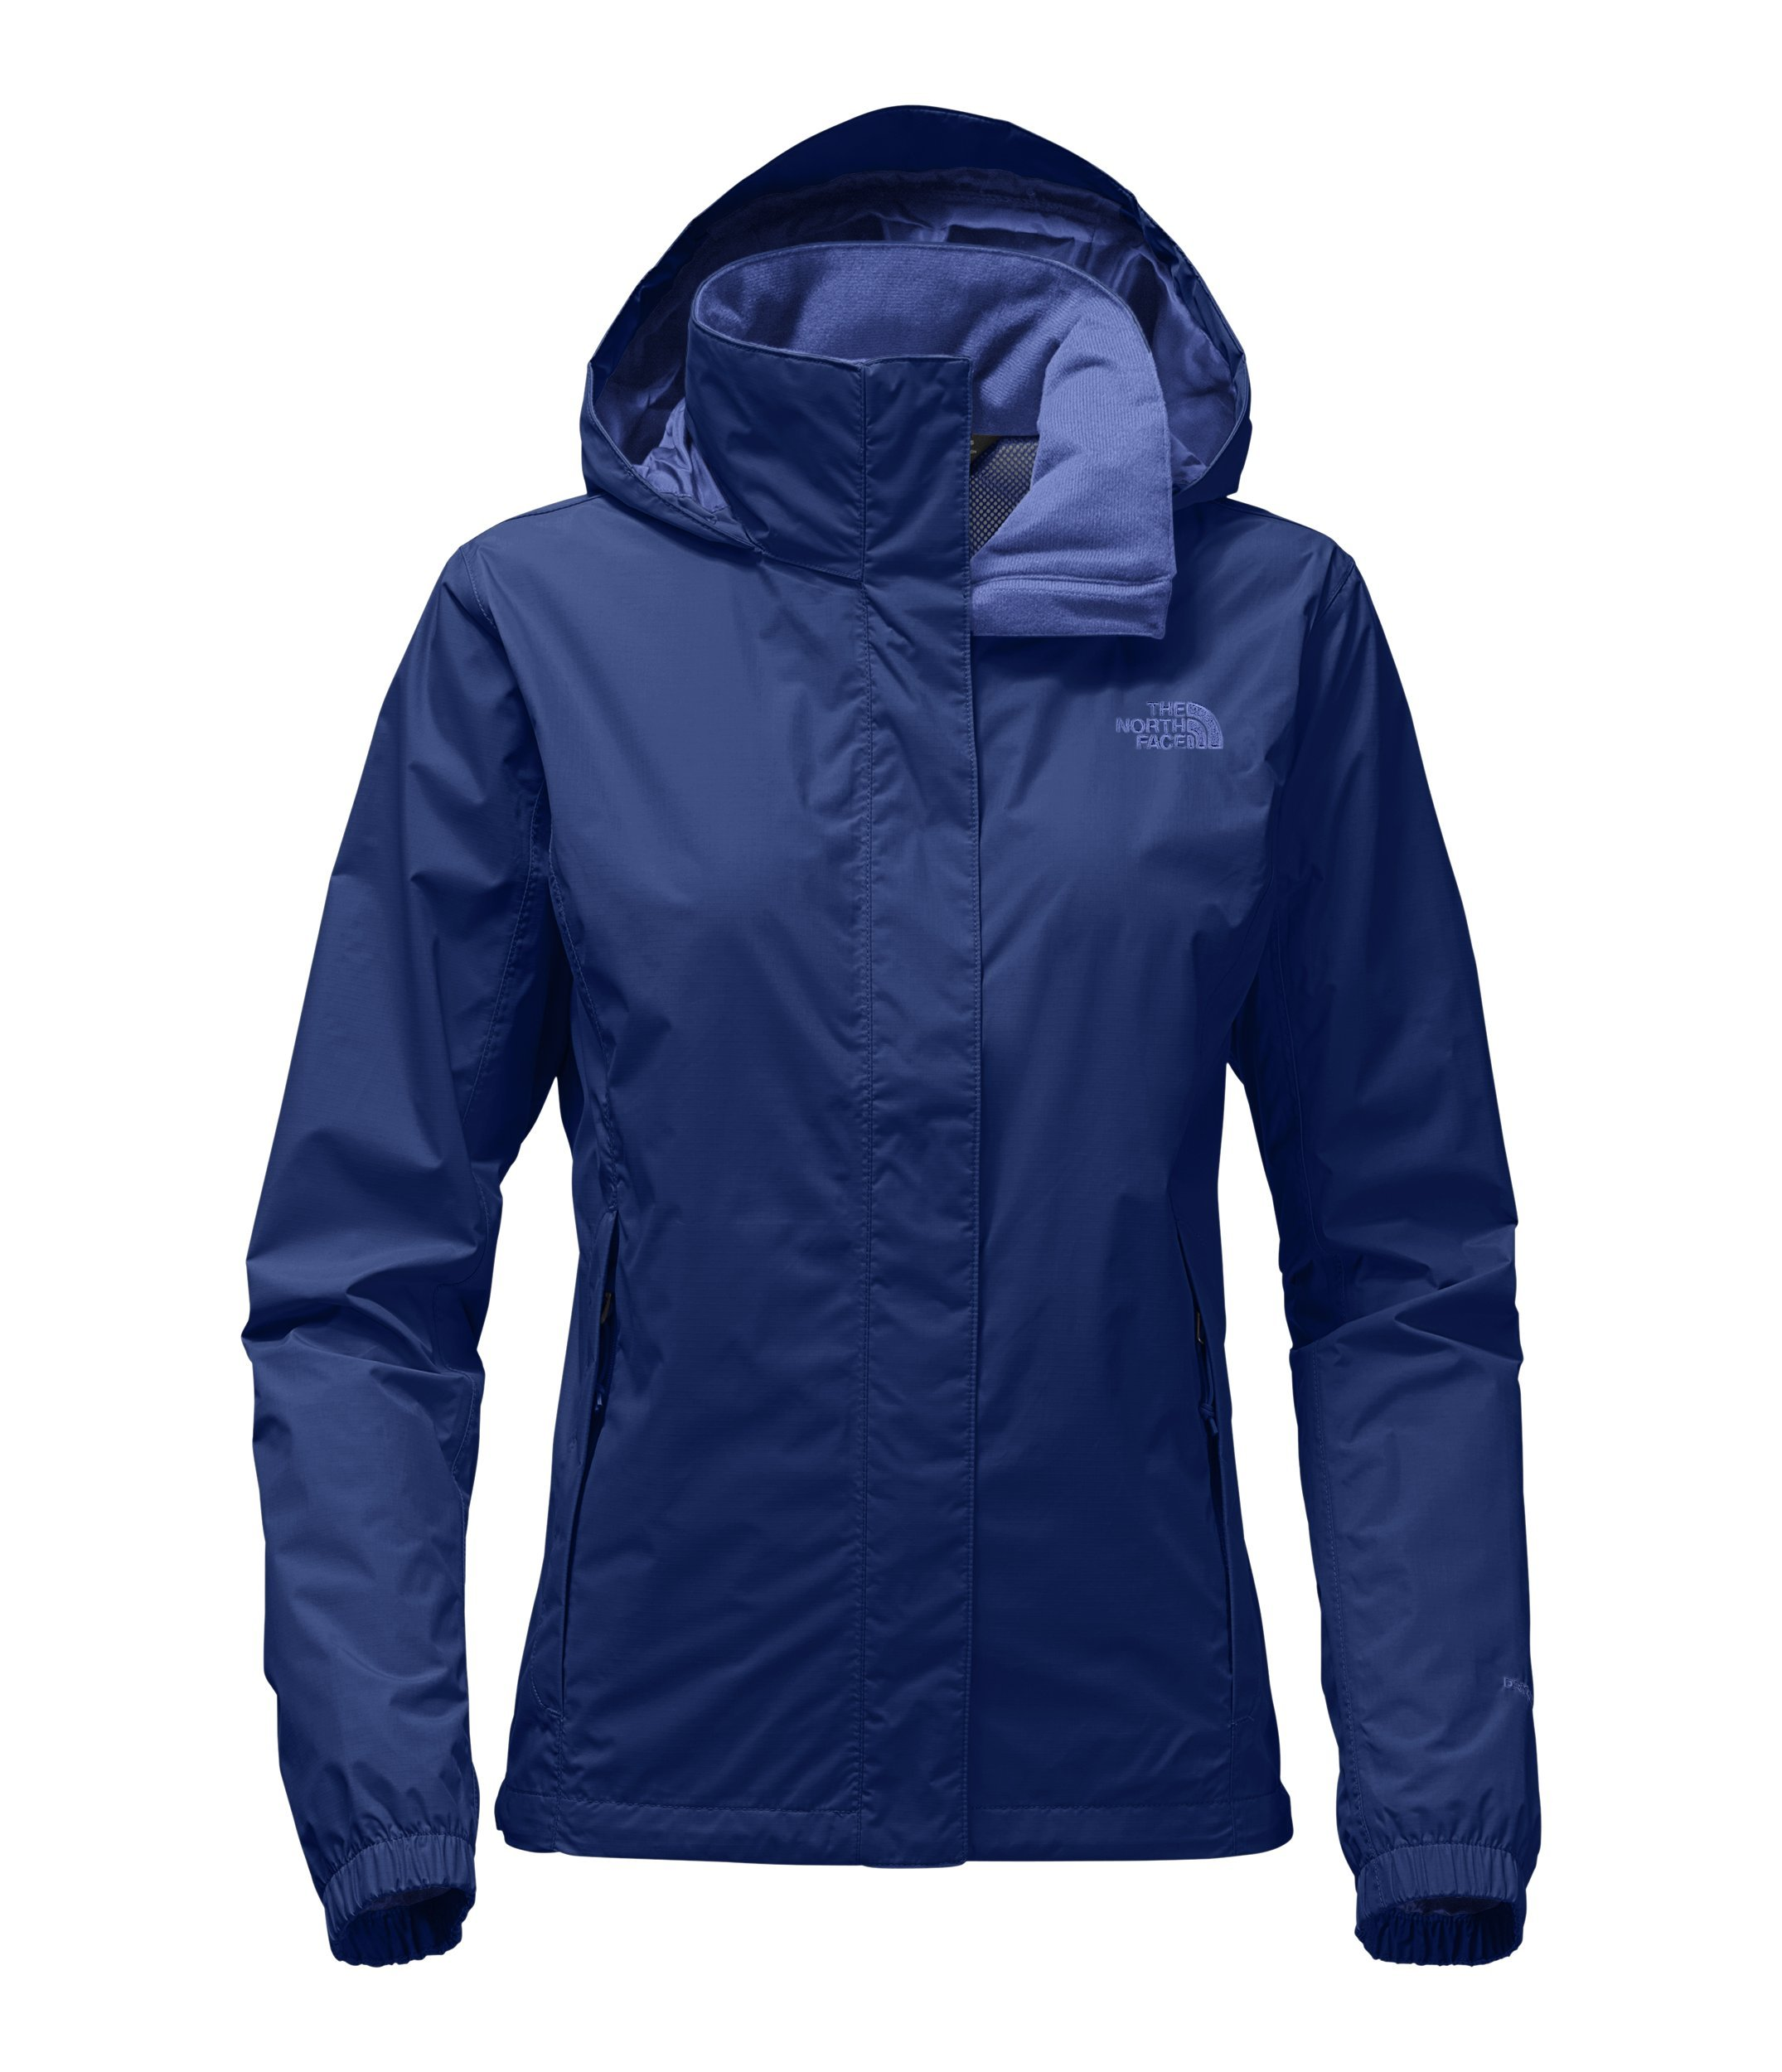 The North Face Women's Resolve 2 Jacket Soda Lite Blue - XXL